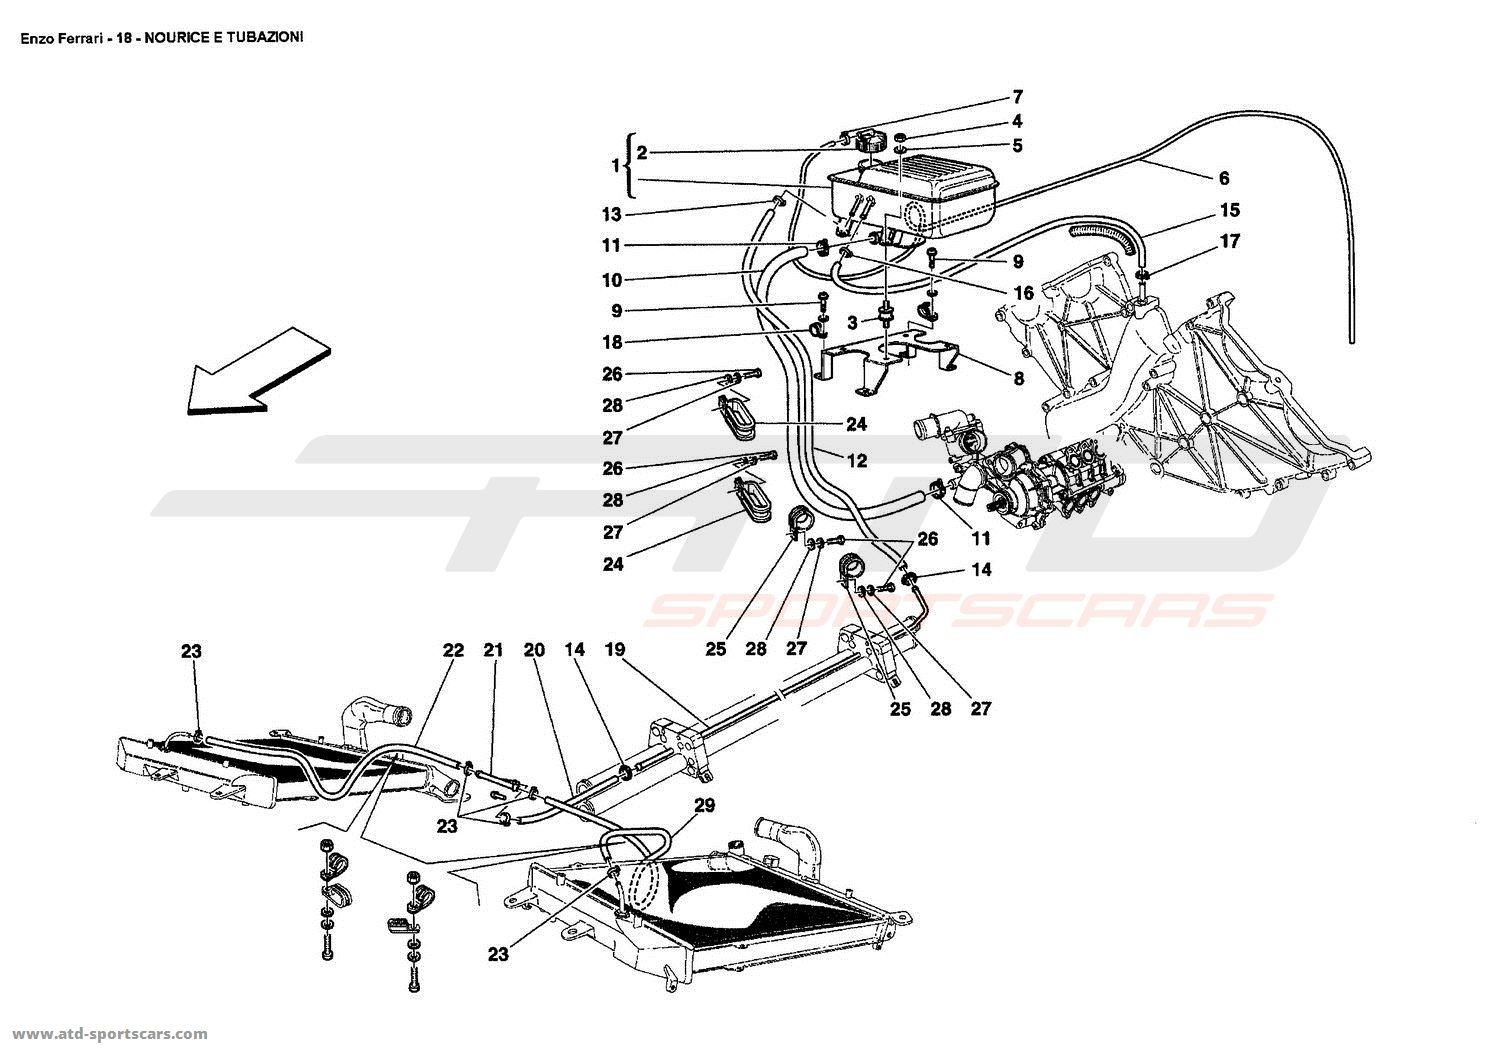 Ferrari Enzo NOURICE AND PIPES parts at ATD-Sportscars